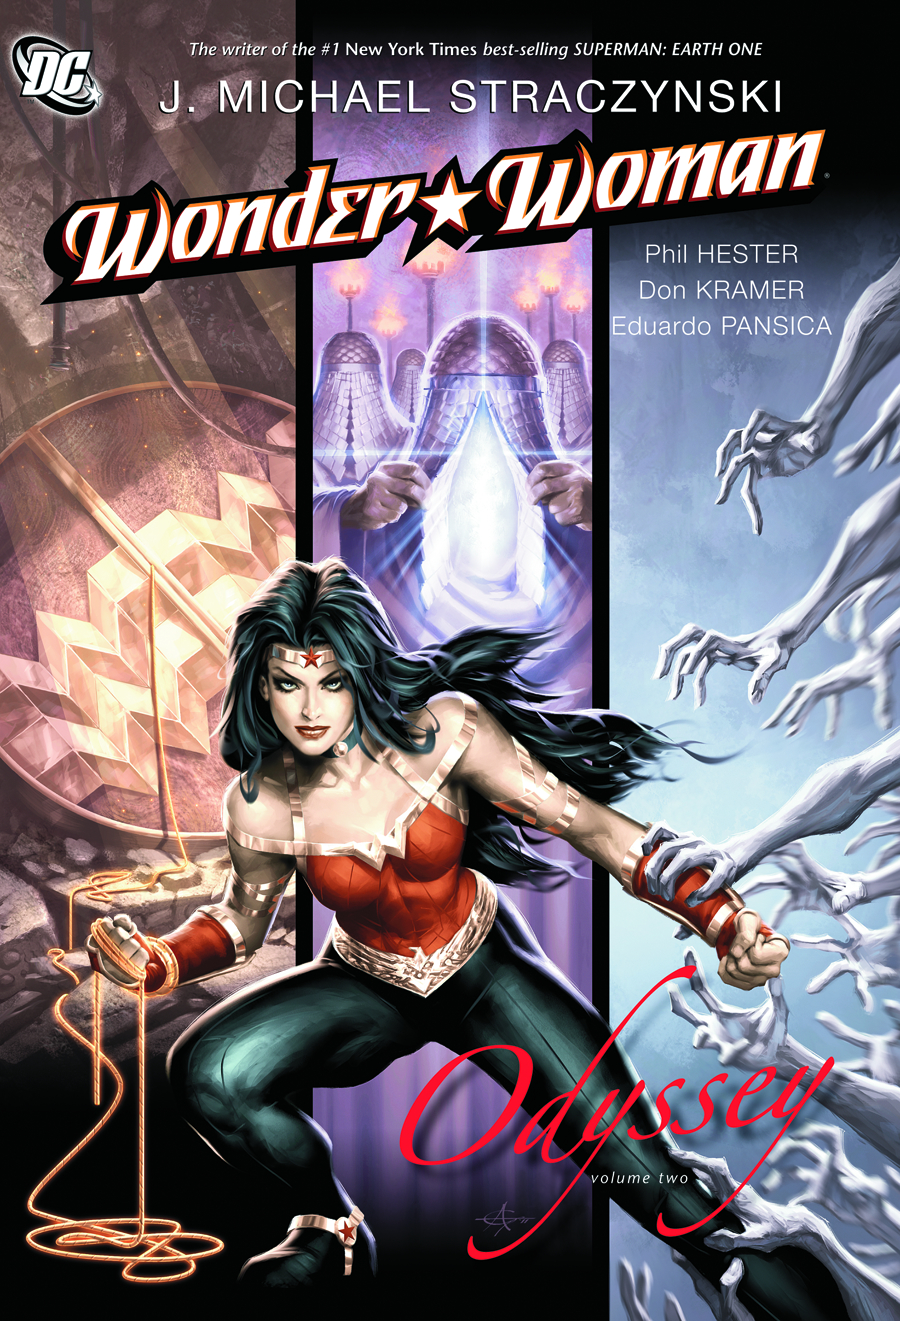 WONDER WOMAN ODYSSEY TP VOL 02